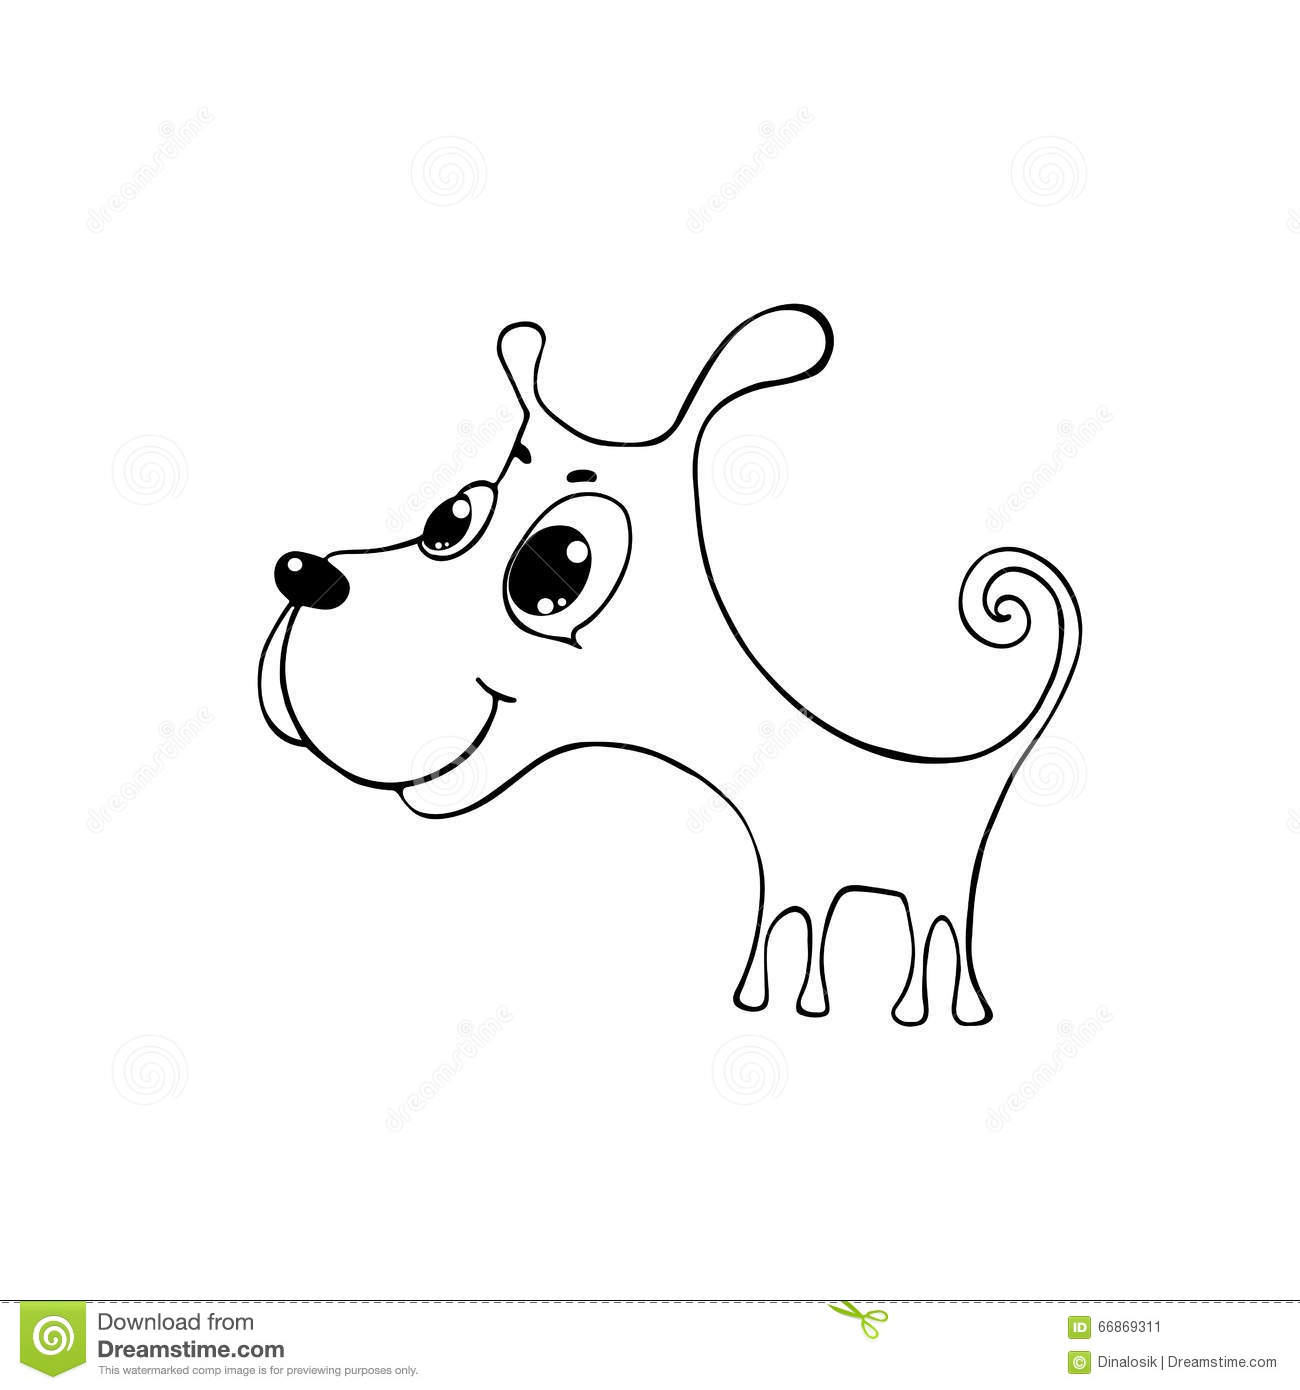 Free Printable Adult Coloring Pages in addition Micro House Plans furthermore From Ancient Air Conditioners To Contemporary Passive Homes also Stock Illustration Cute Puppy Big Eyes Contour Ink Drawing Vector Illustration Image66869311 additionally Natures Nursery. on cool dog house plans